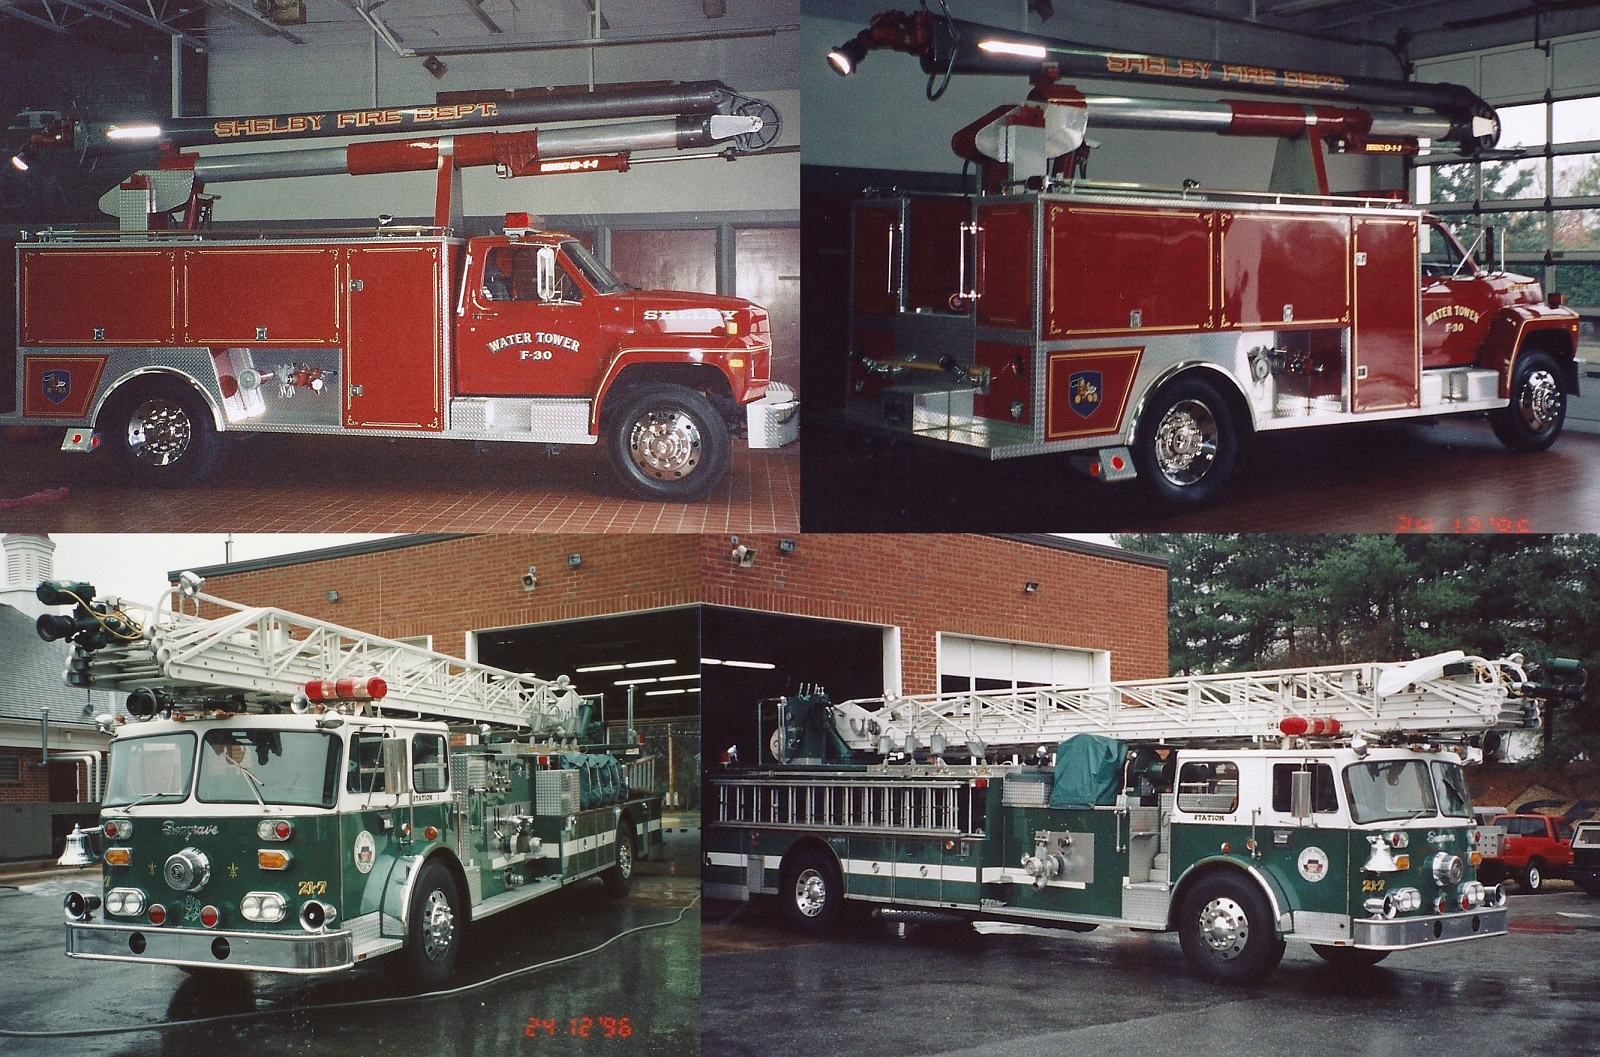 Seagrave Fire Apparatus >> Vintage Photos from Shelby – Green Aerial Ladder & Red ...